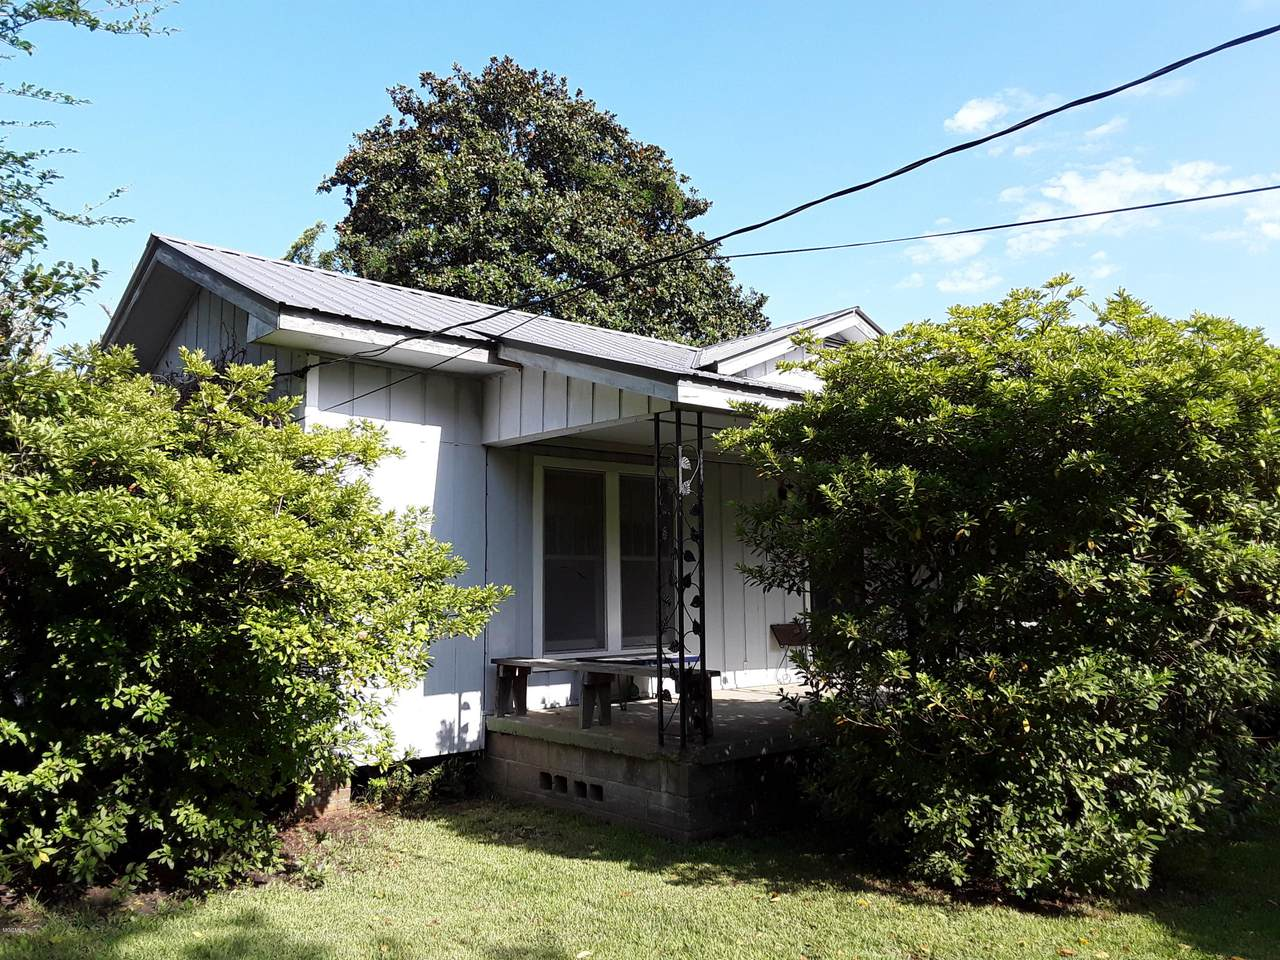 14345 Old Hwy 49 - Photo 1